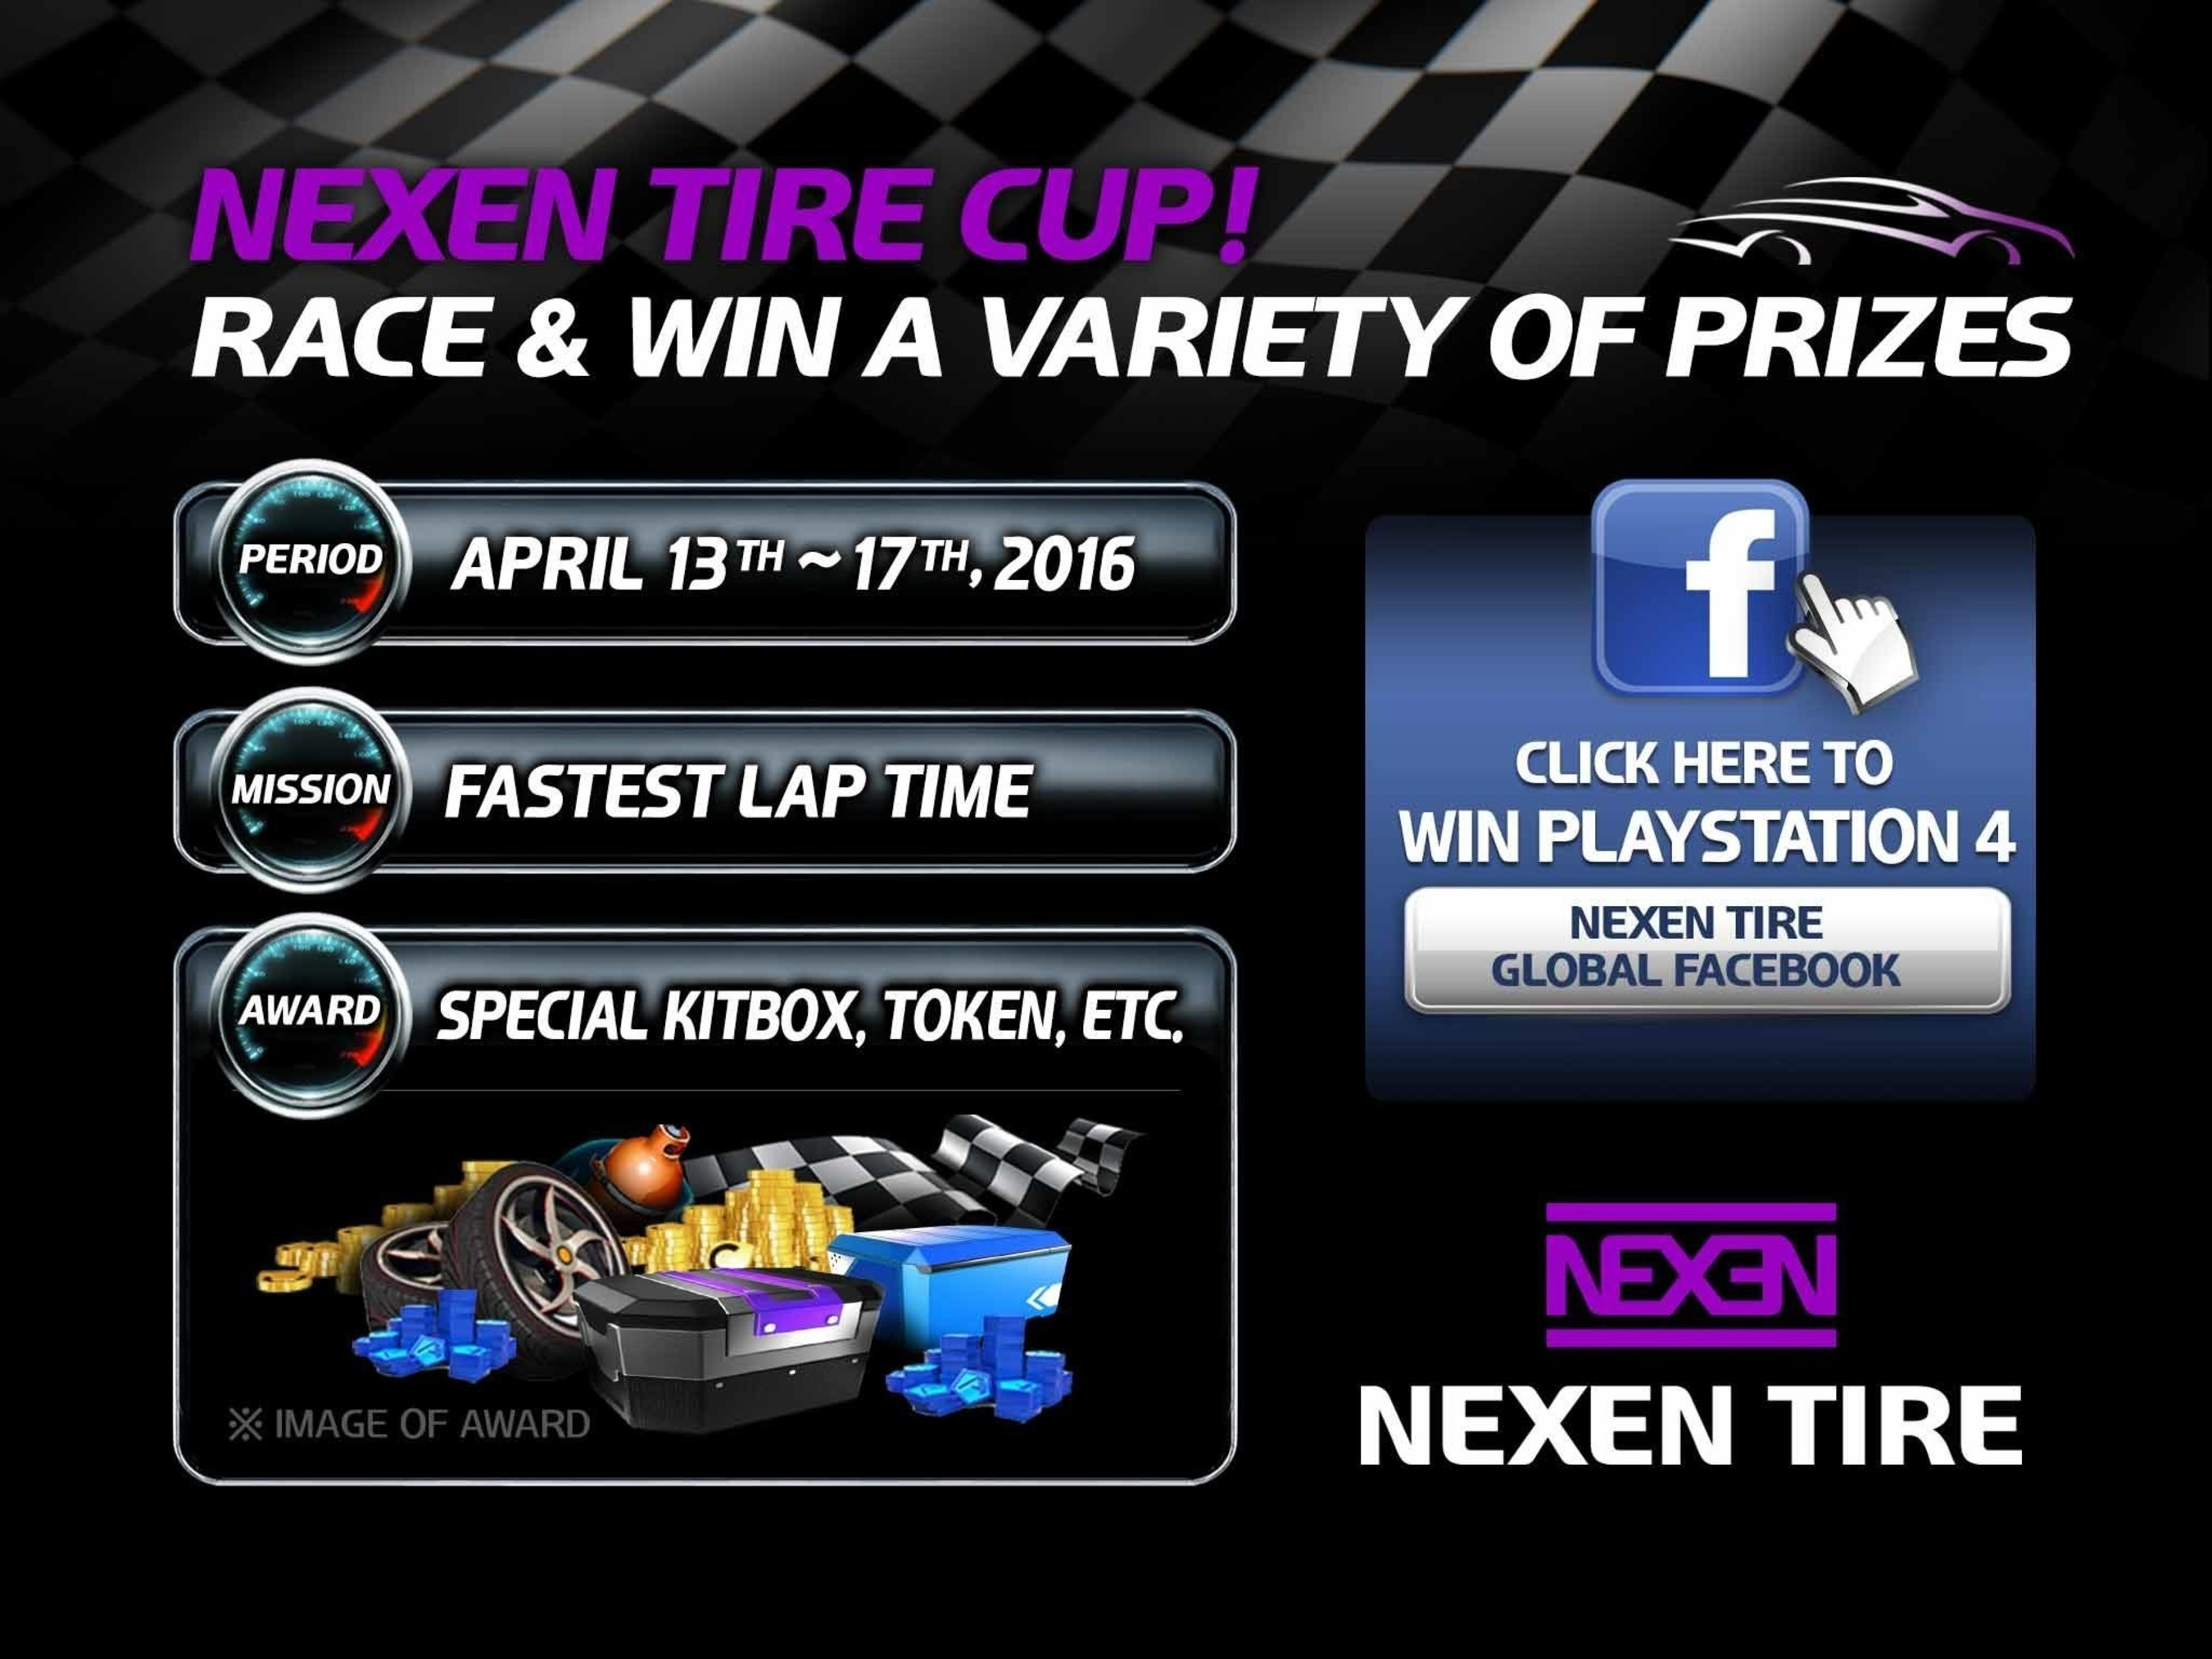 Nexen Tire Runs Advertisements and Promotion Game Events through Asphalt 8